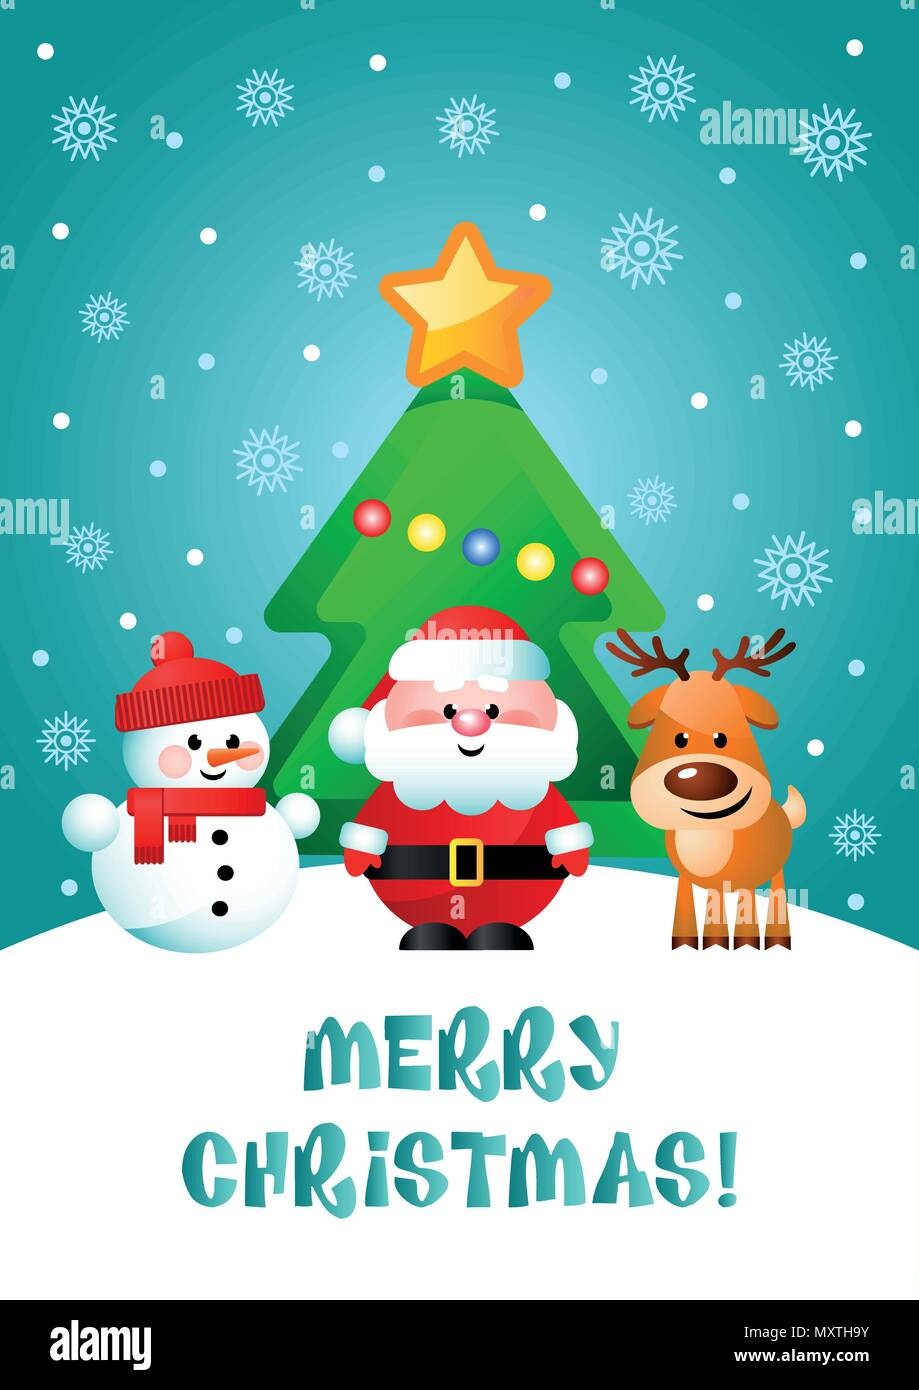 Merry Christmas Greeting Card With Cute Cartoon Characters Santa